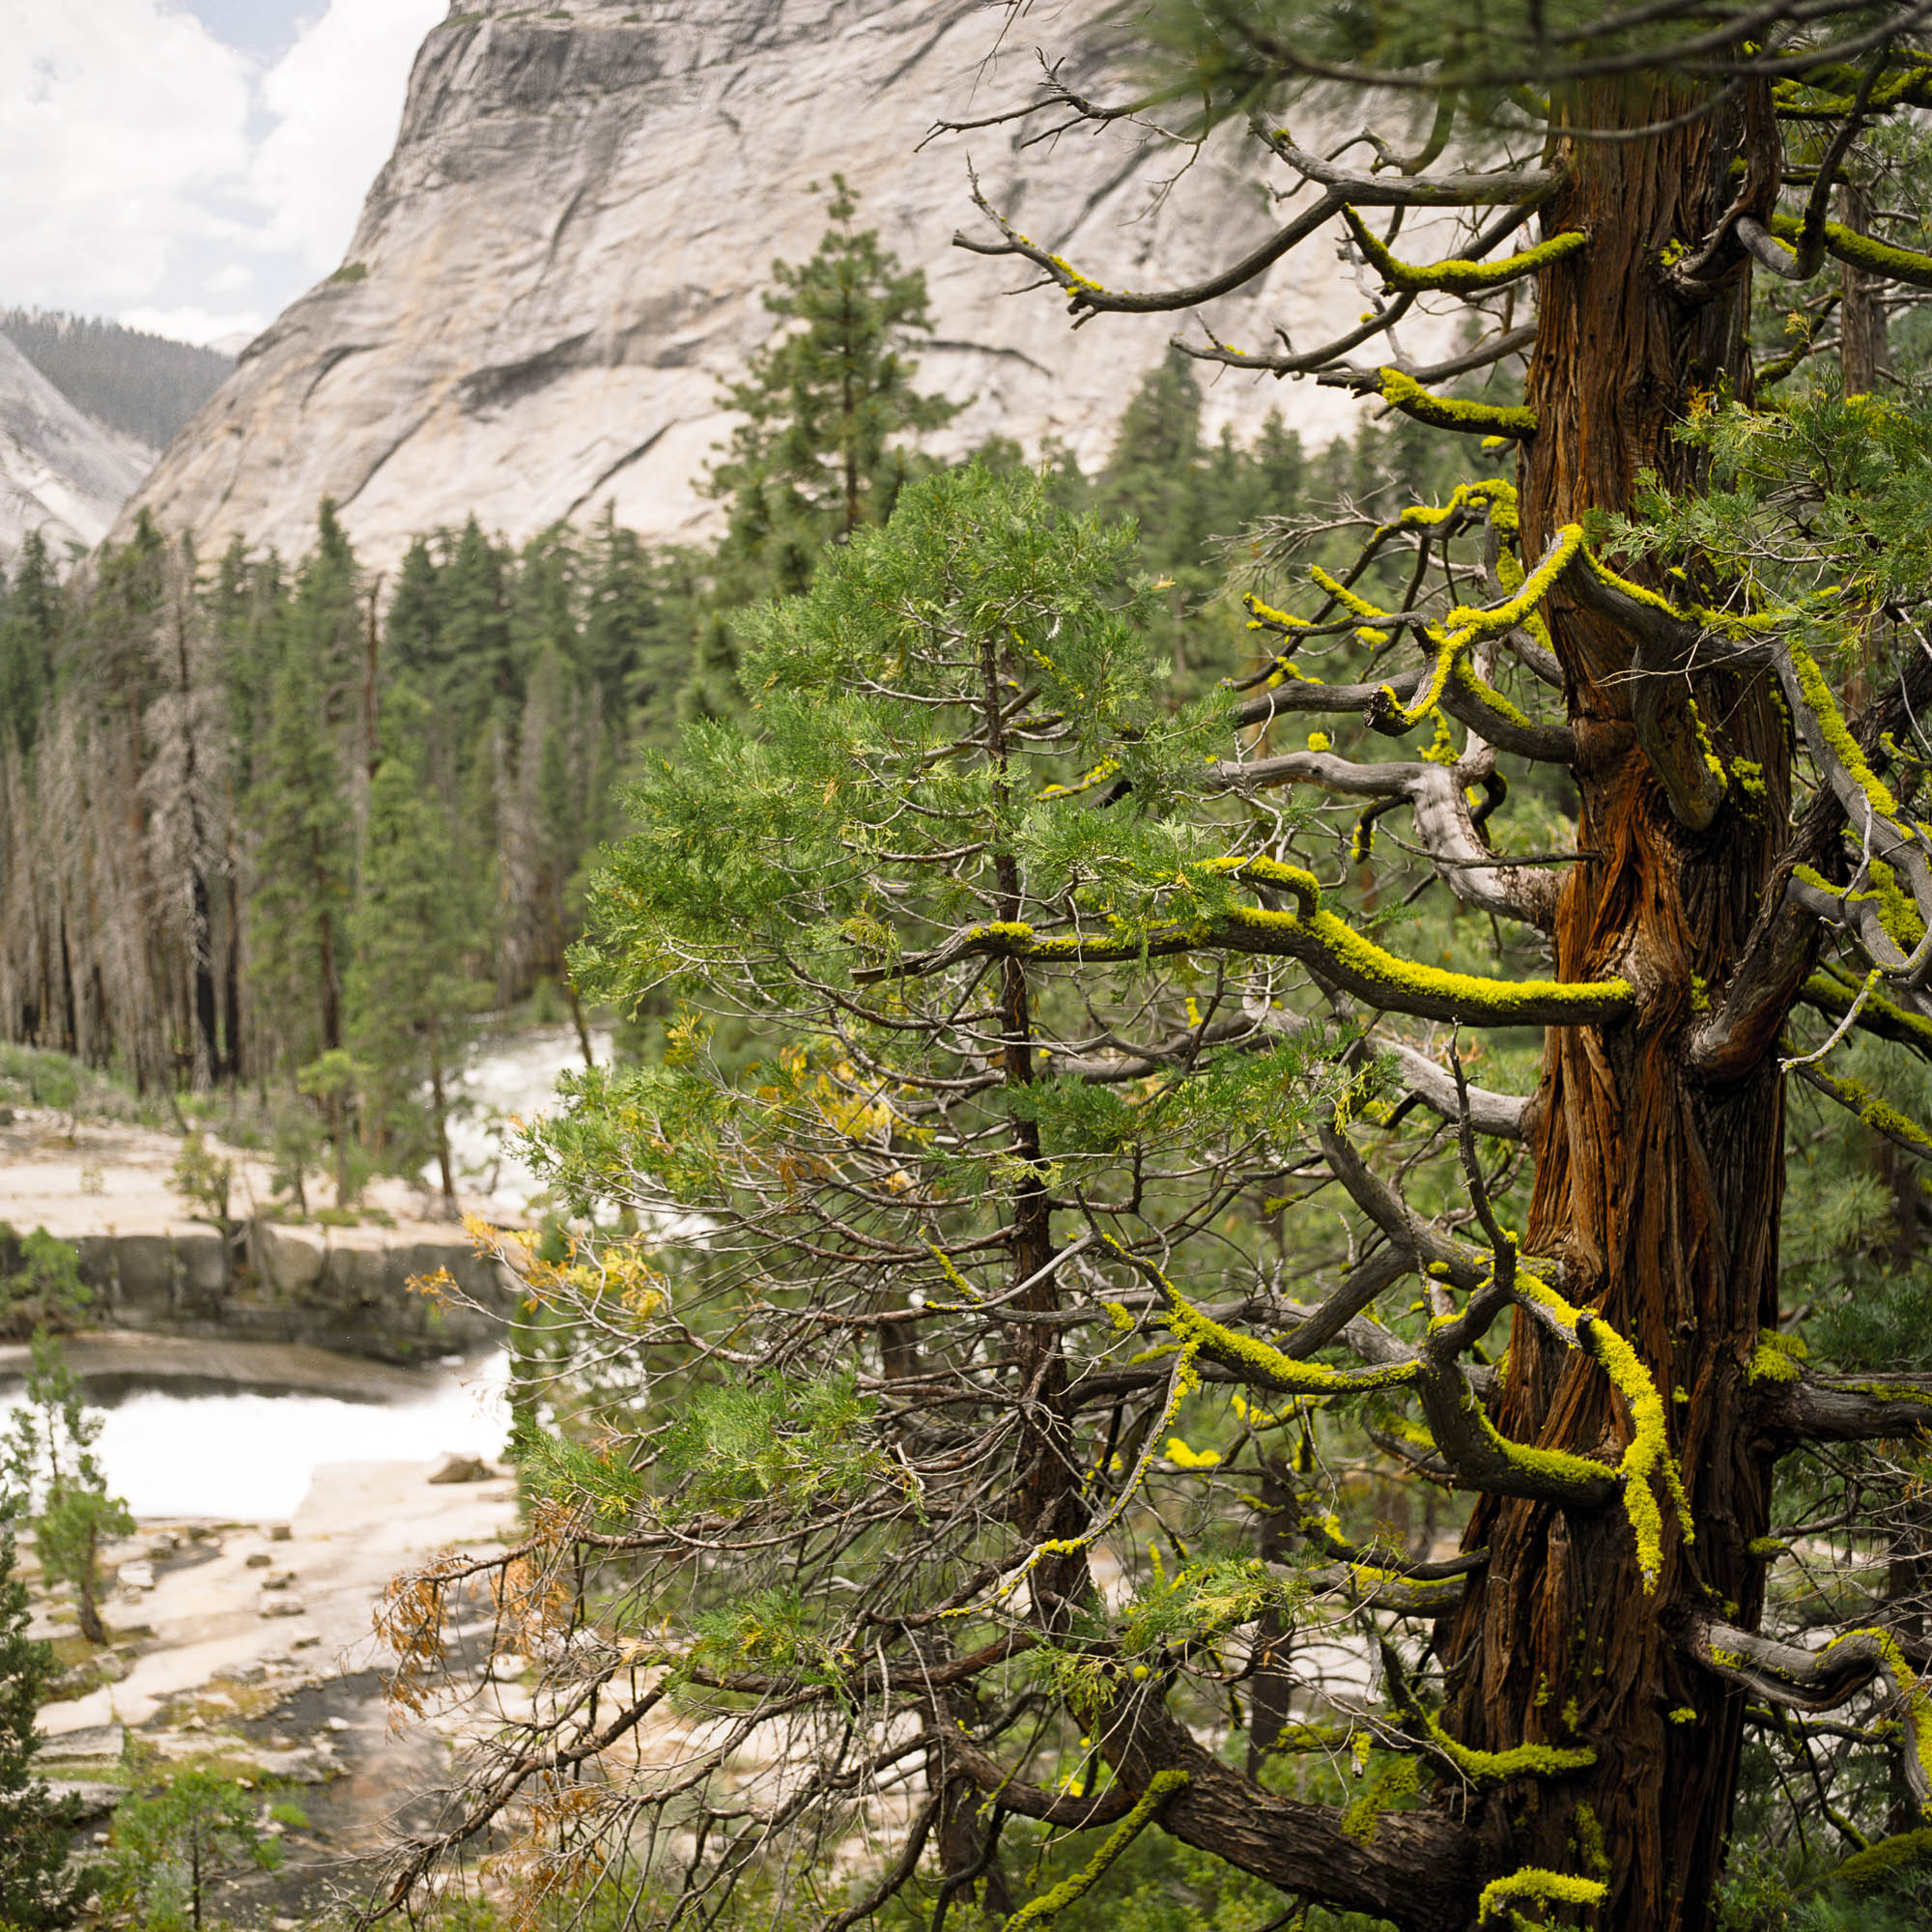 TRAVEL_020_YOSEMITE_01-E-SMALL.jpg